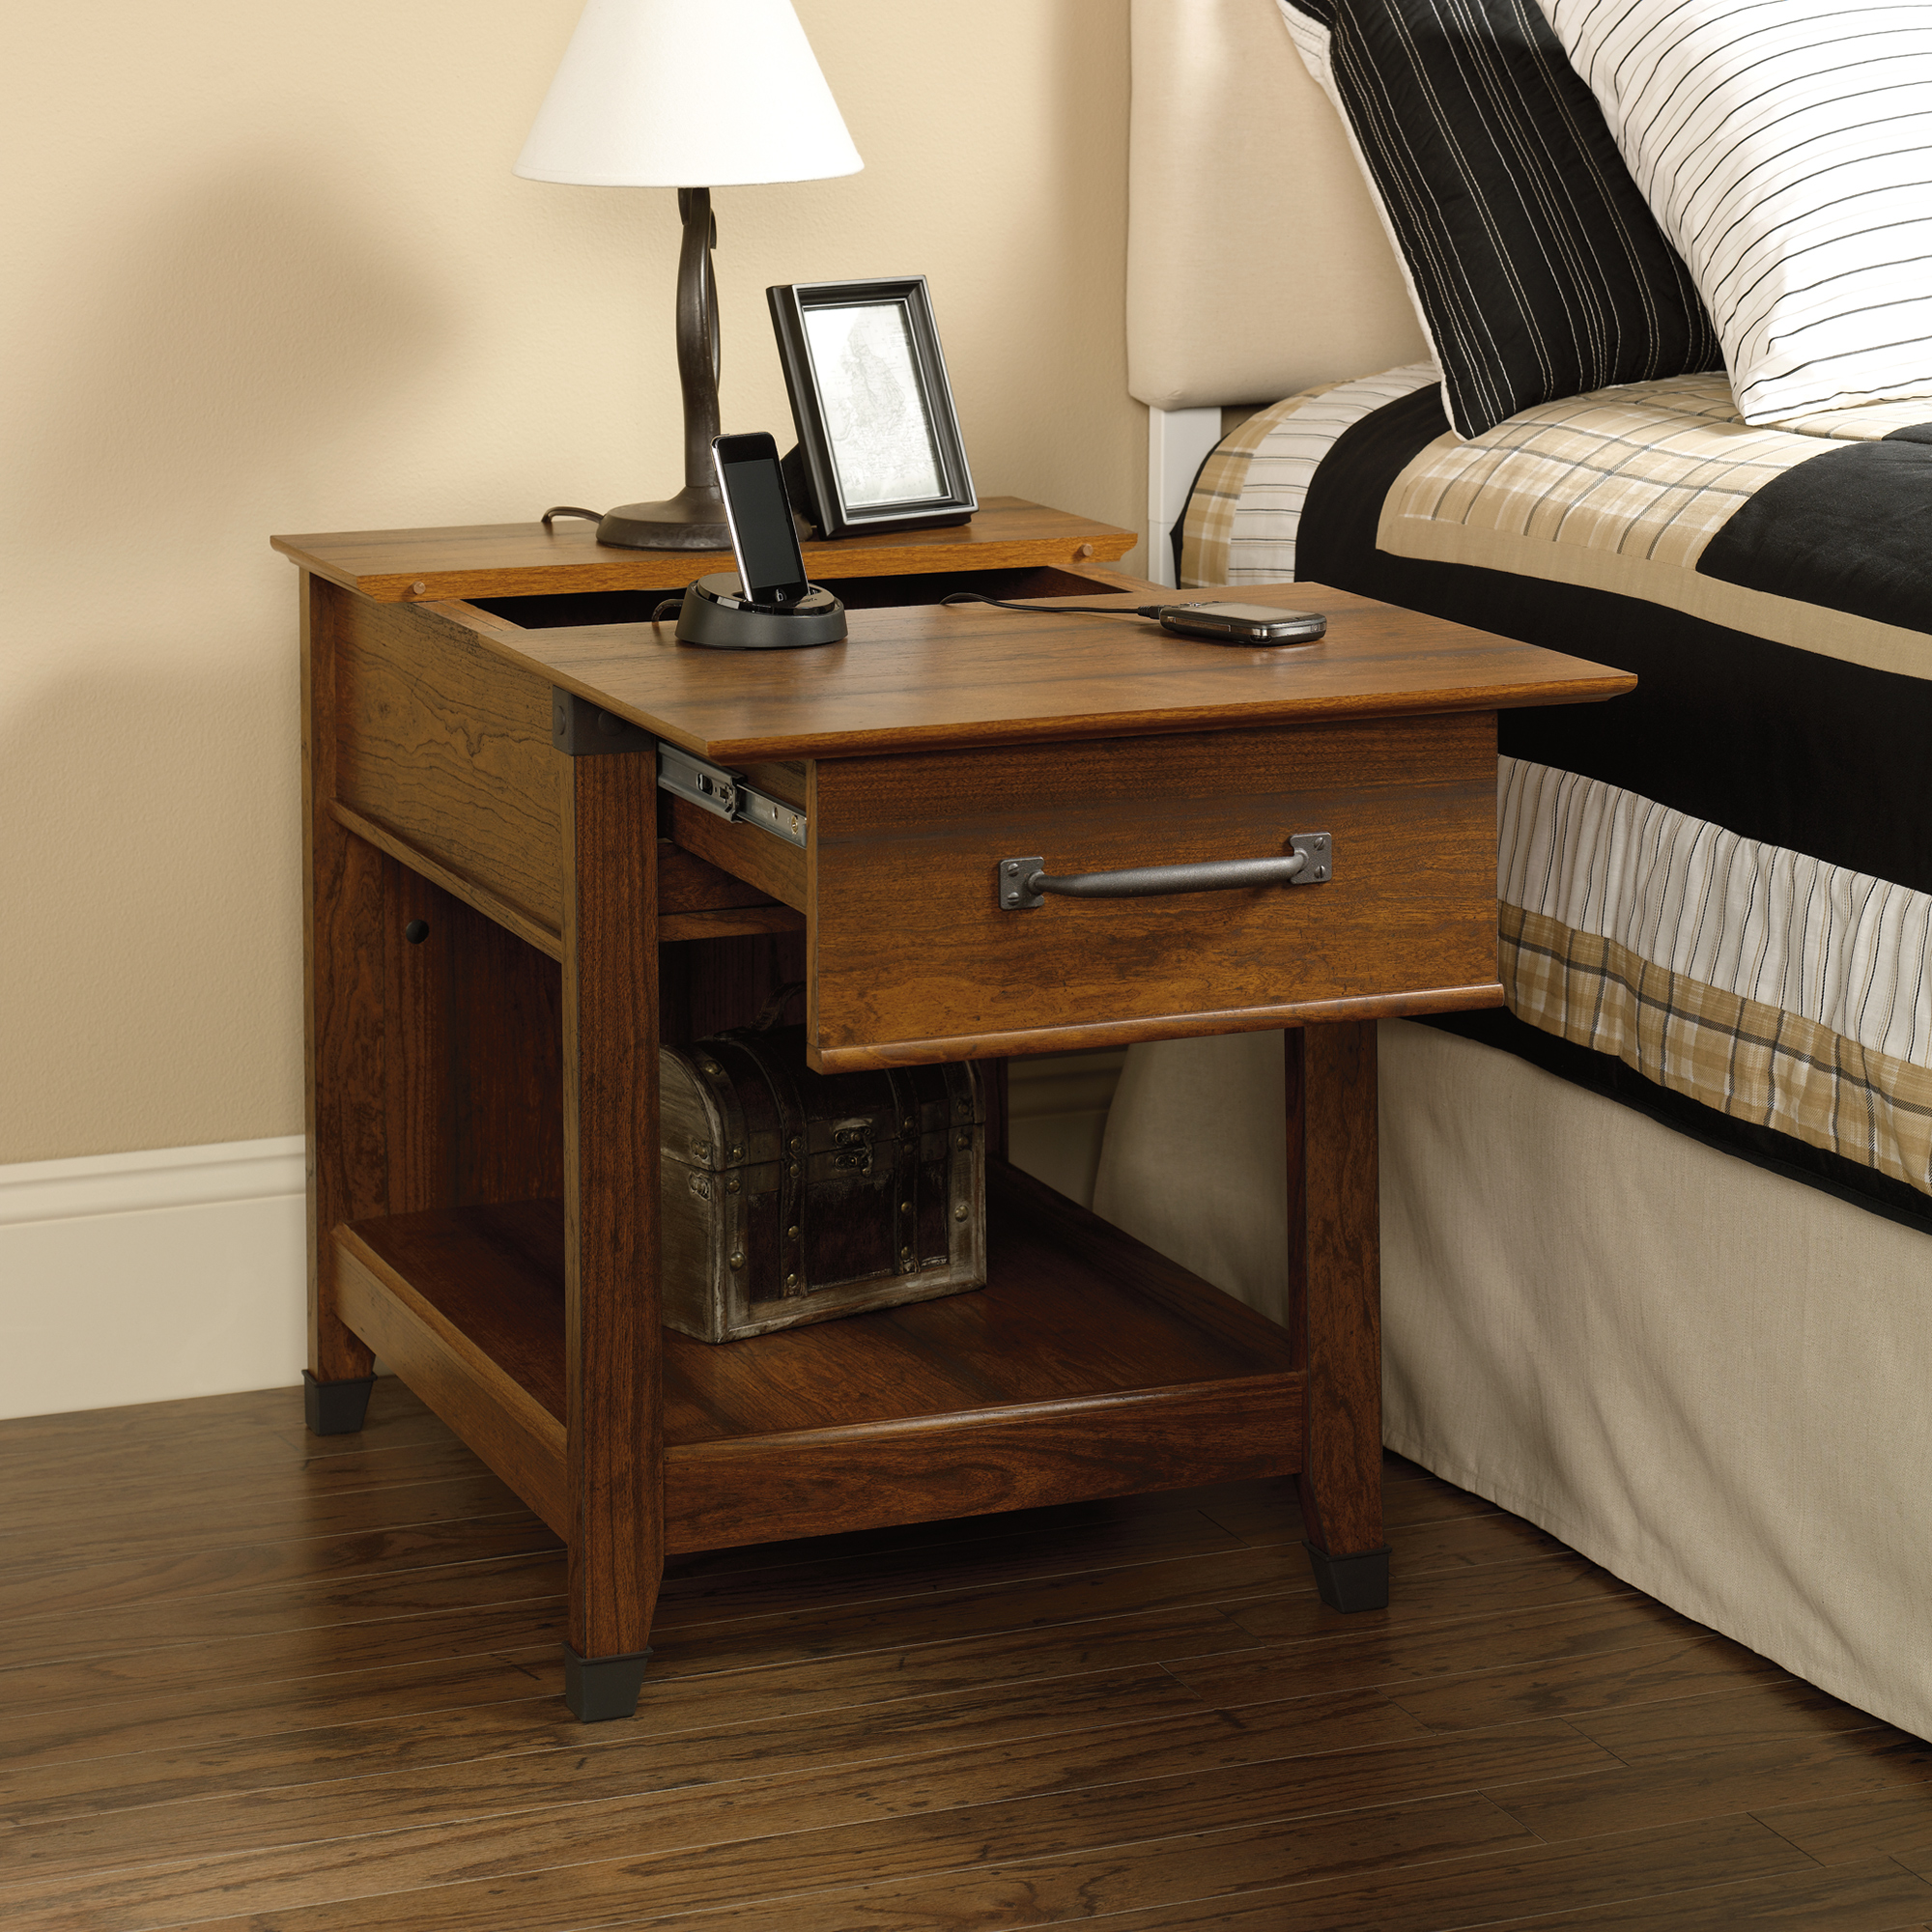 table with charging station loris decoration accent tables carson forge end wooden side designs champagne mirrored furniture pub bar half moon console pineapple lights farmhouse